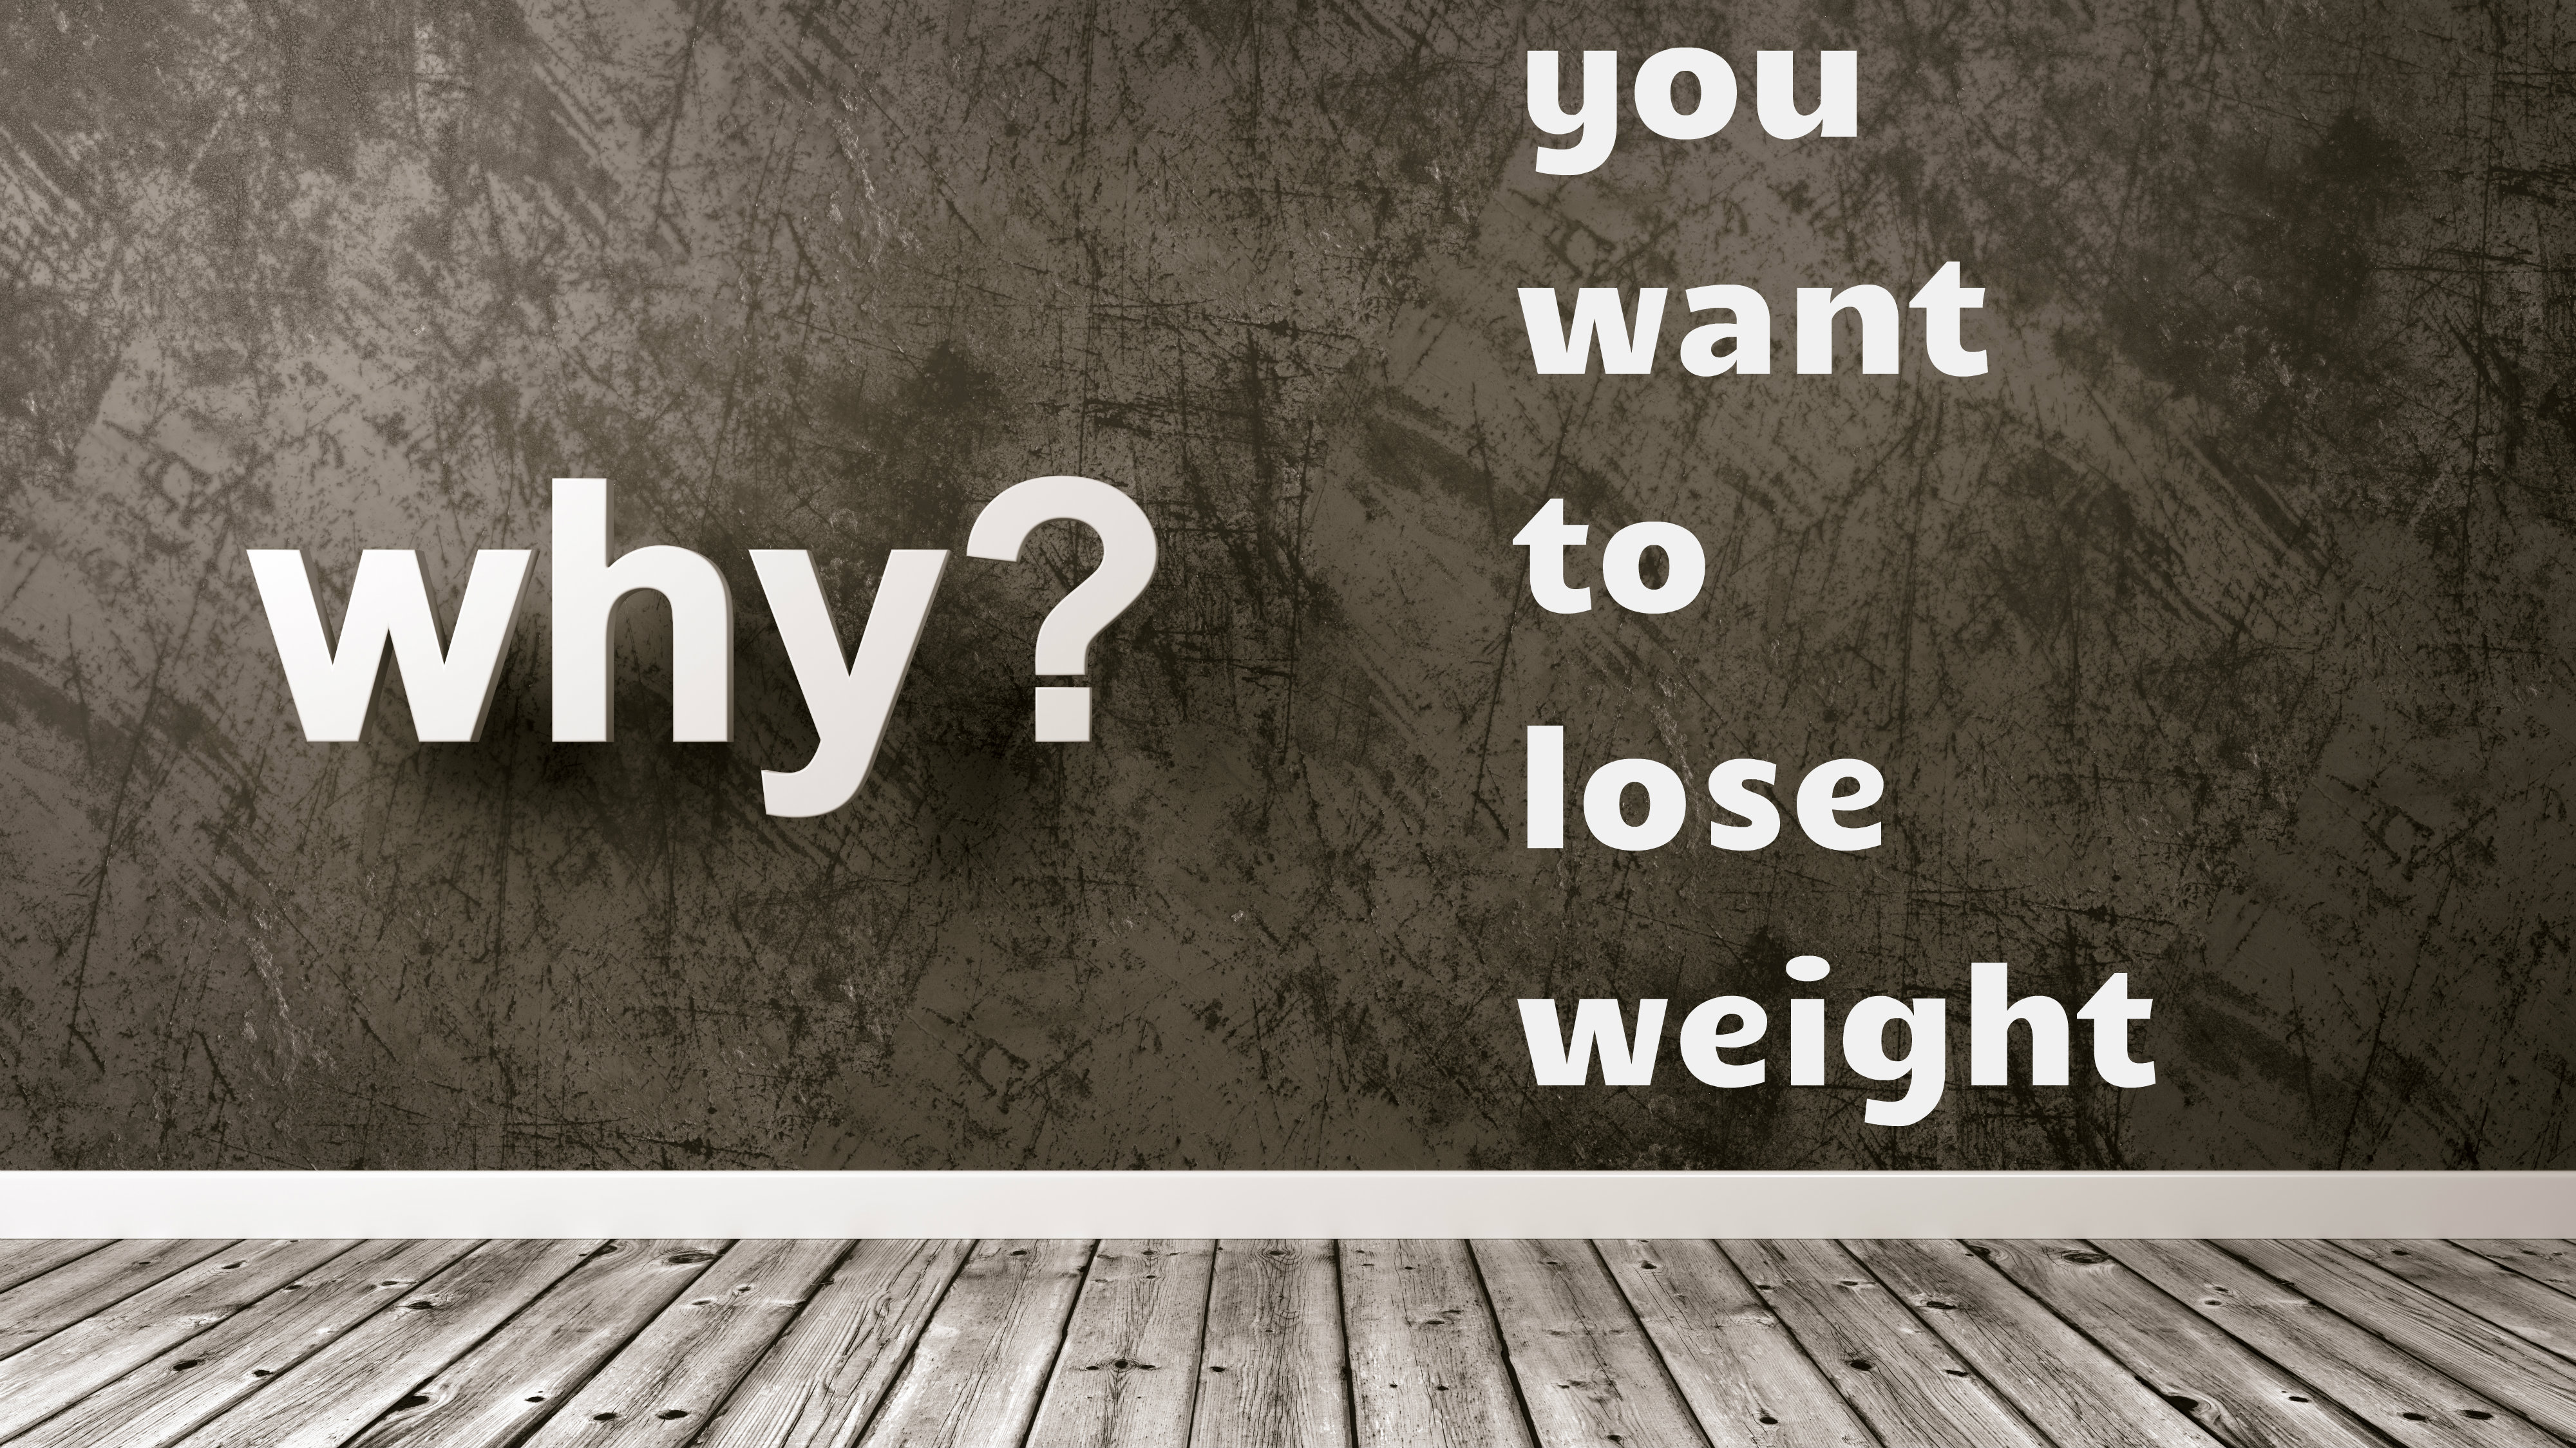 Focus on WHY you want to lose weight